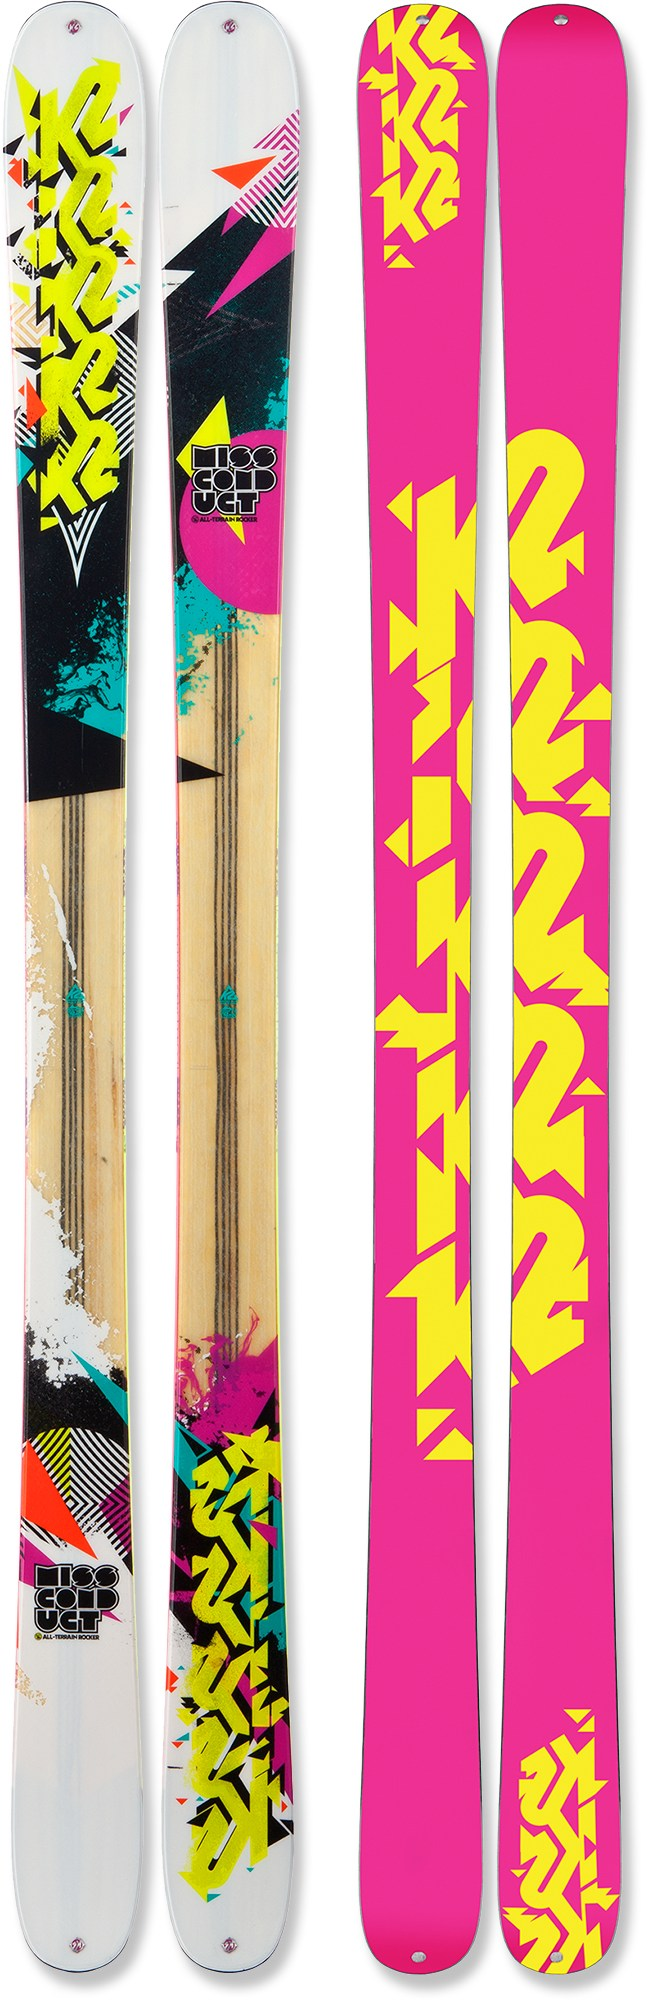 Ski K2 MissConduct Skis - Women's - 2012/2013 $399